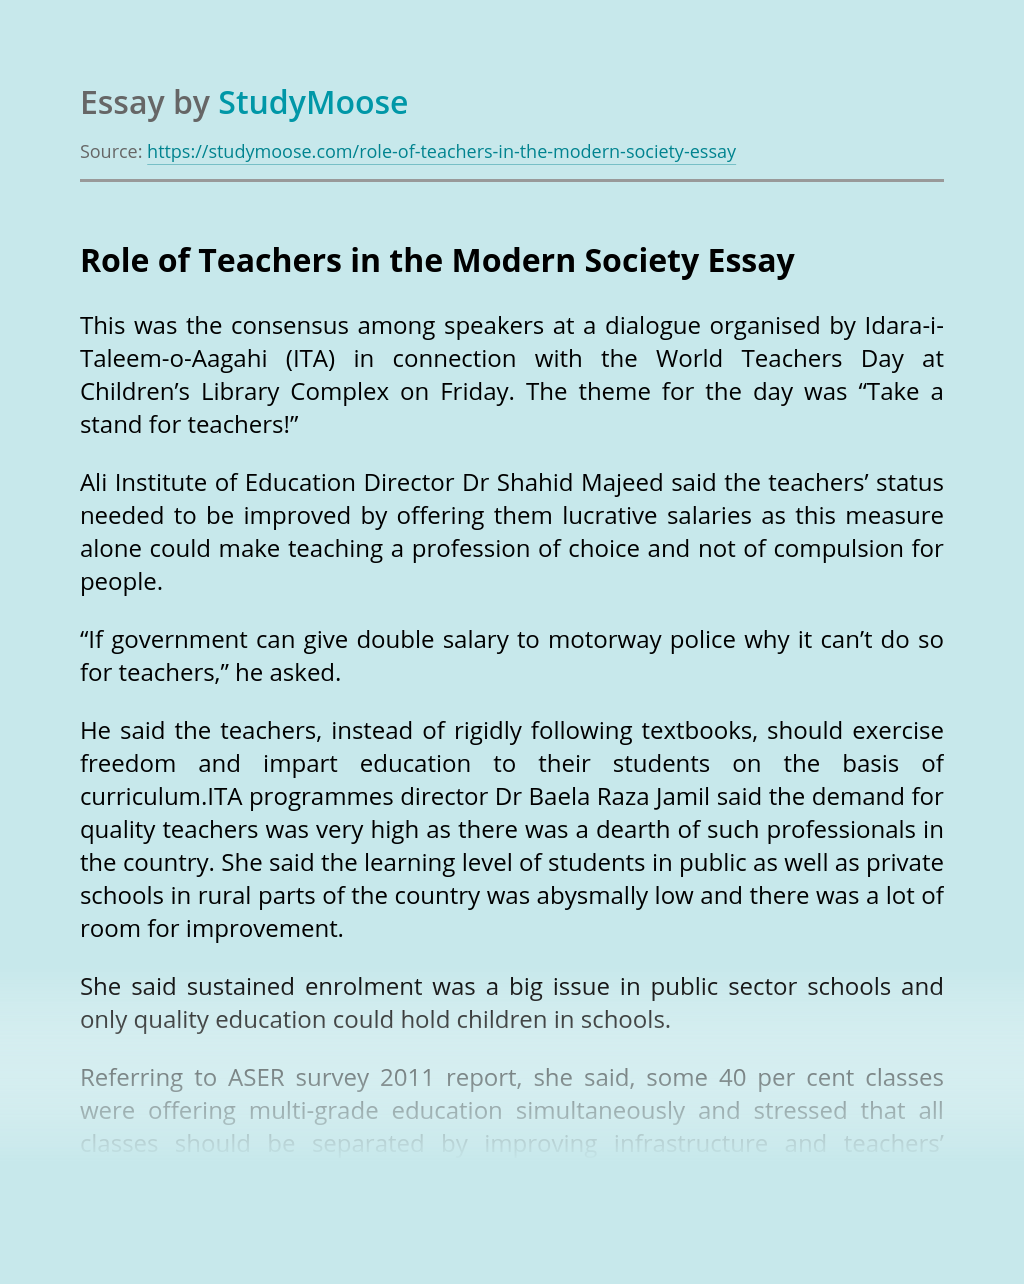 Role of Teachers in the Modern Society